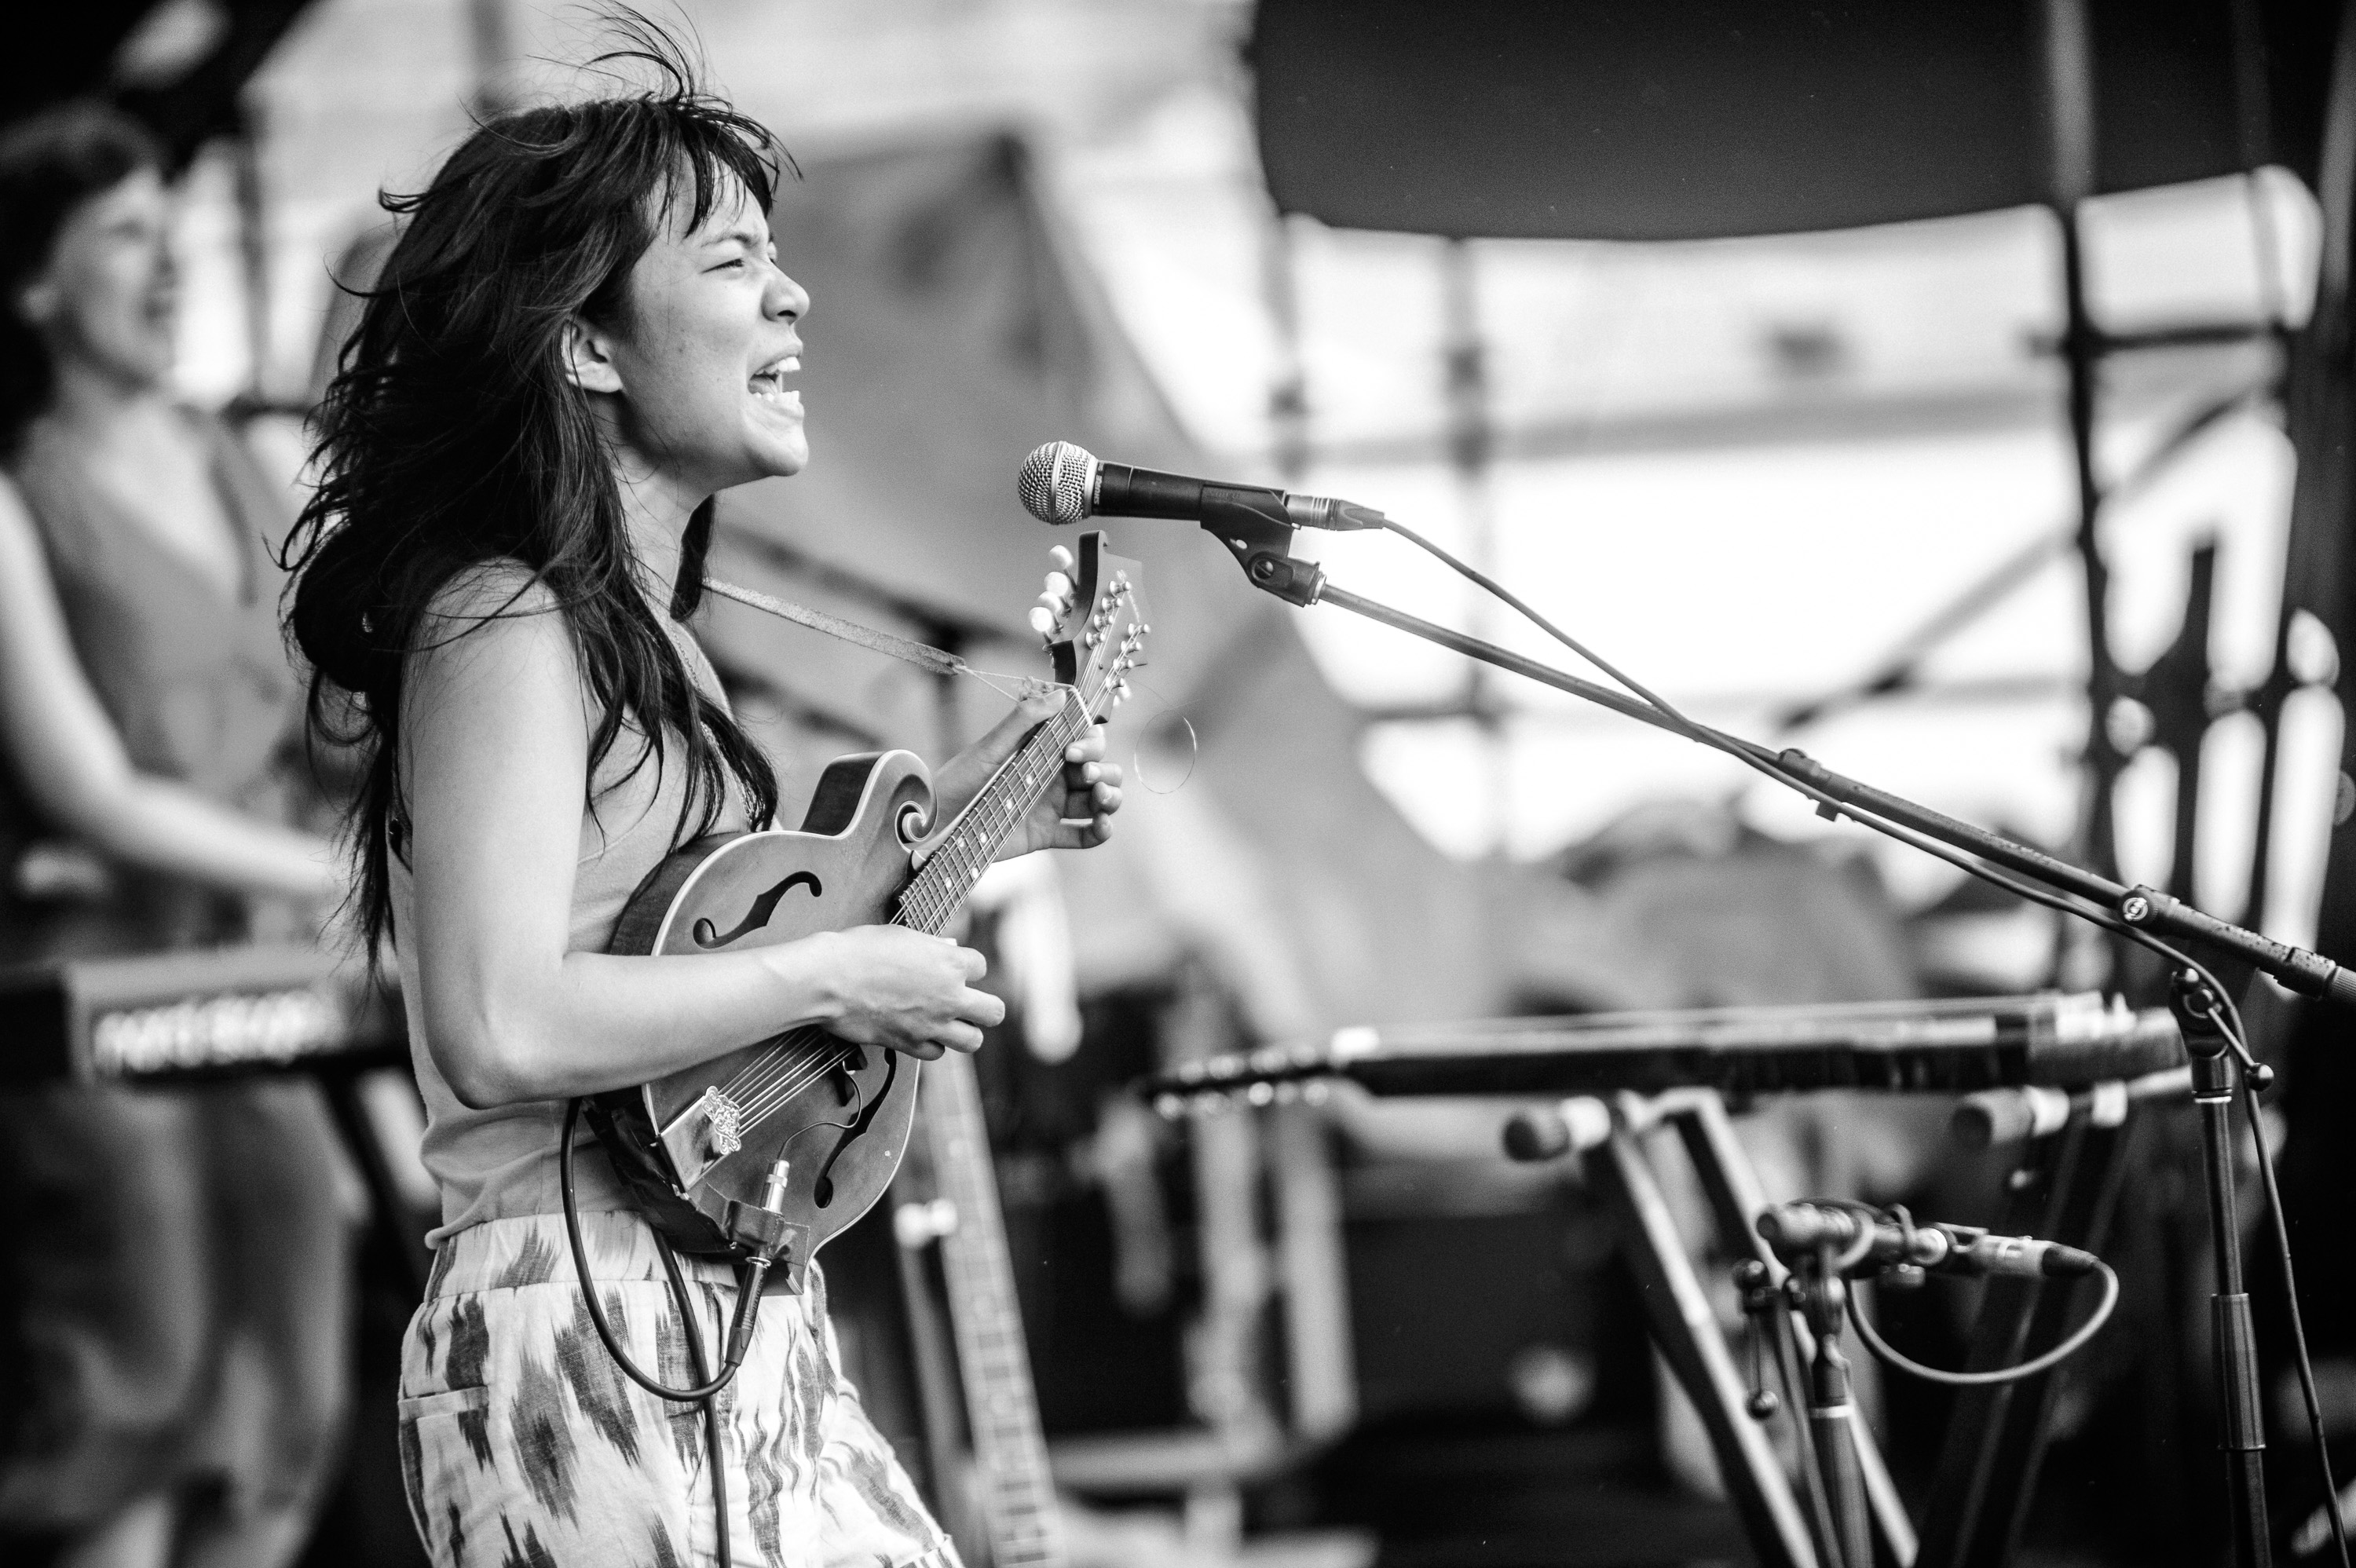 Thao & The Get Down Stay Down performs at the 2014 Newport Jazz Festival-2